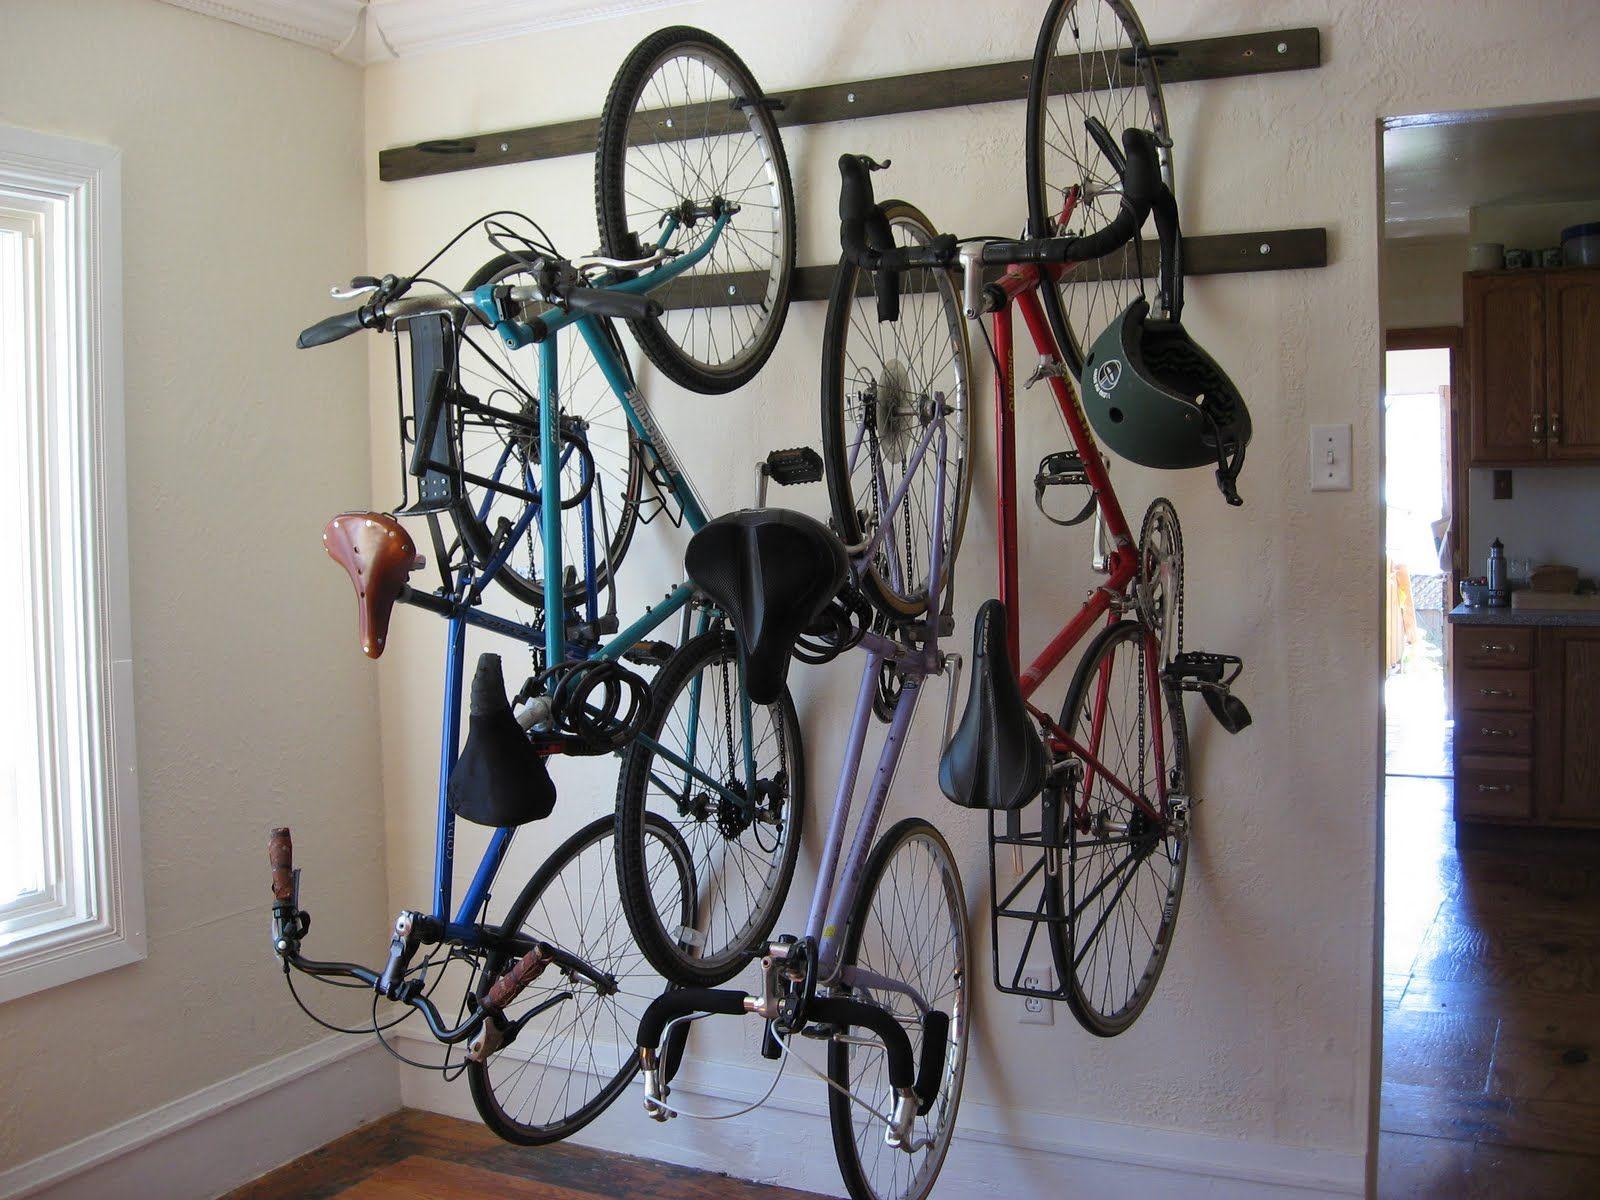 Post 100 My Brand New Homemade Wall Hanging Bike Rack Diy Bike Rack Hanging Bike Rack Bike Storage Diy